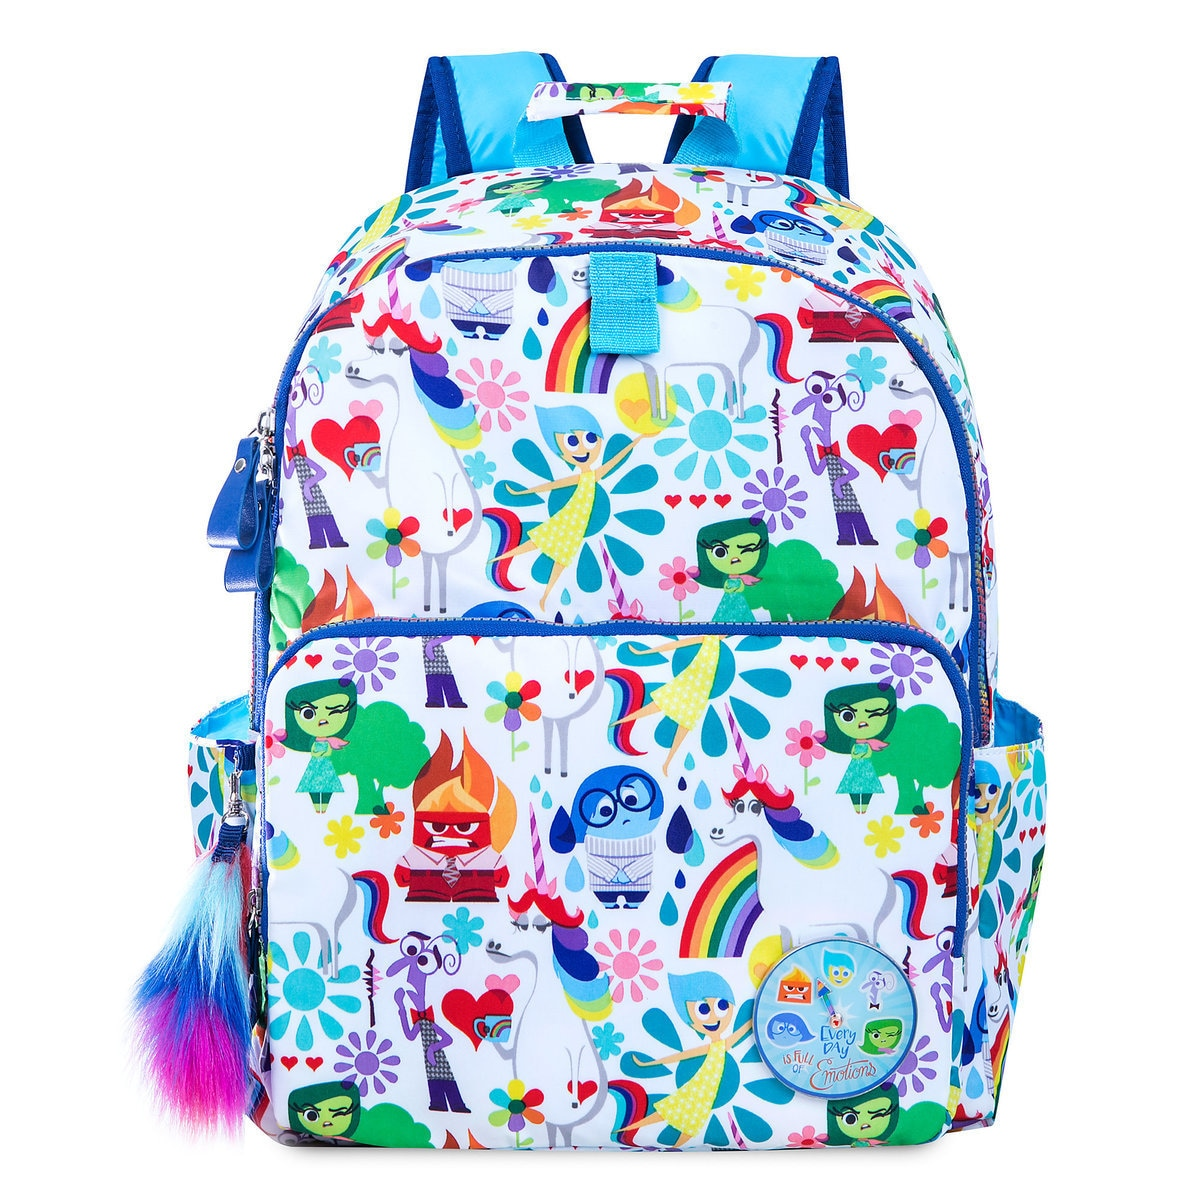 5300337e136 Product Image of Inside Out Backpack - Personalizable   1